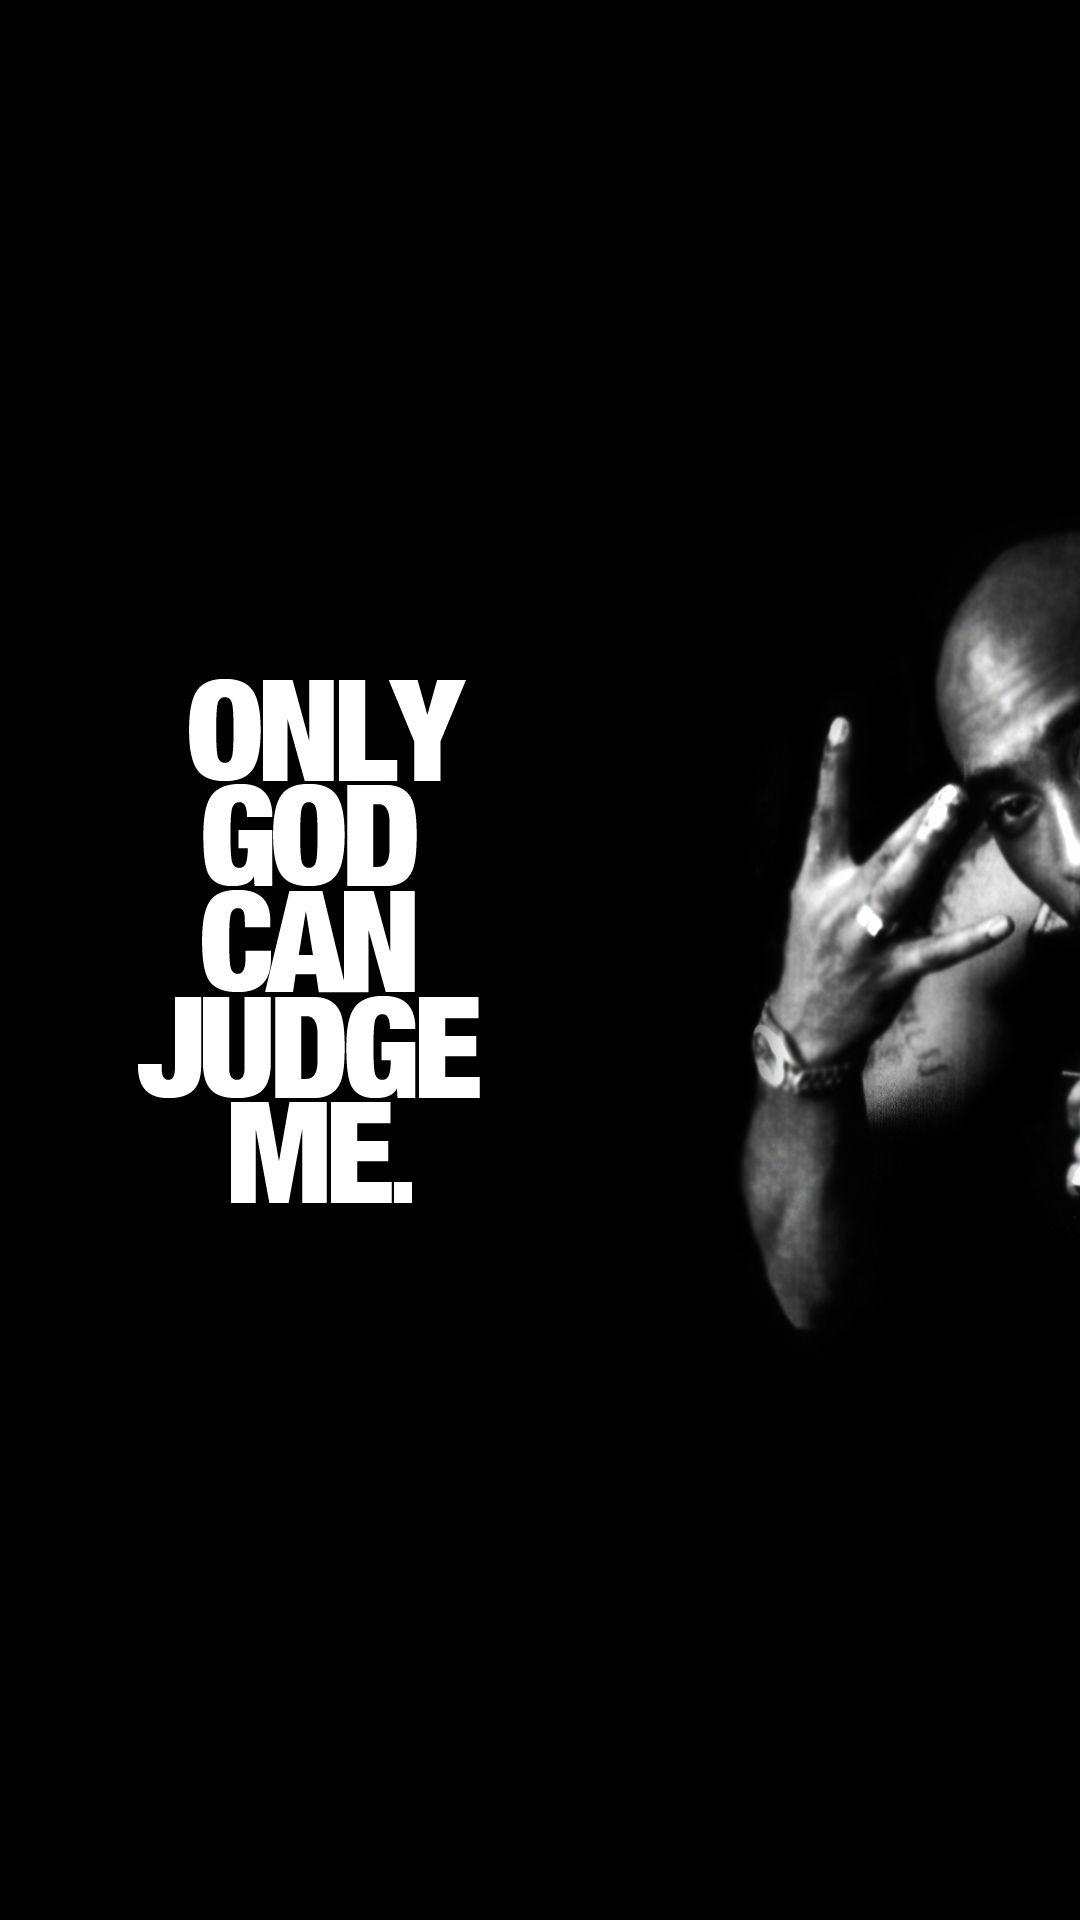 Music Only God Can Judge Me Tupac Shakur 2pac Black Dark Quotes Hip Hop Rap HD IPhone 6 Plus Wallpaper